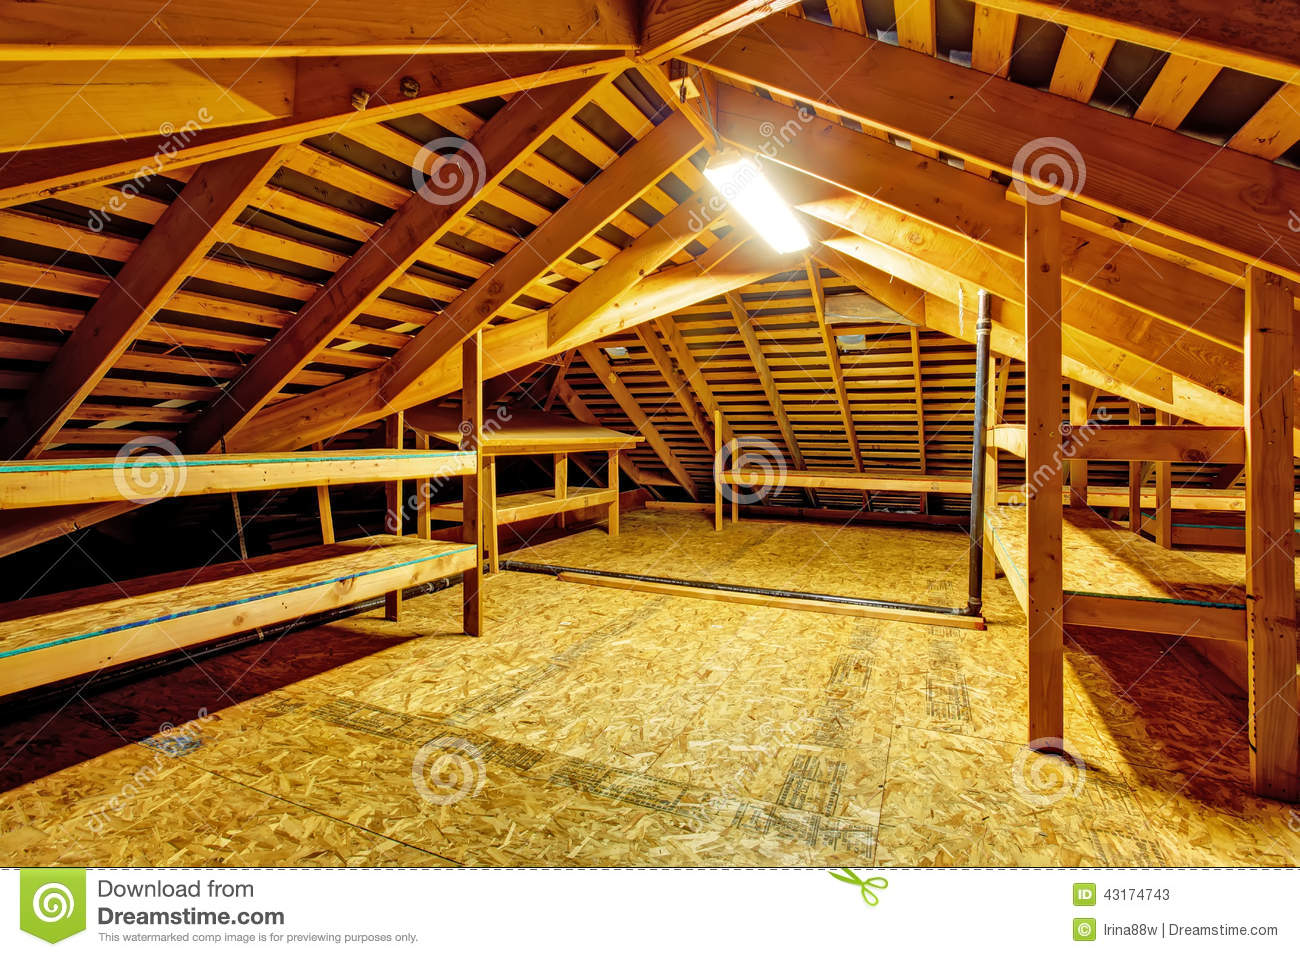 attic truss storage ideas - Empty Attic With Storage Shelves Stock Image